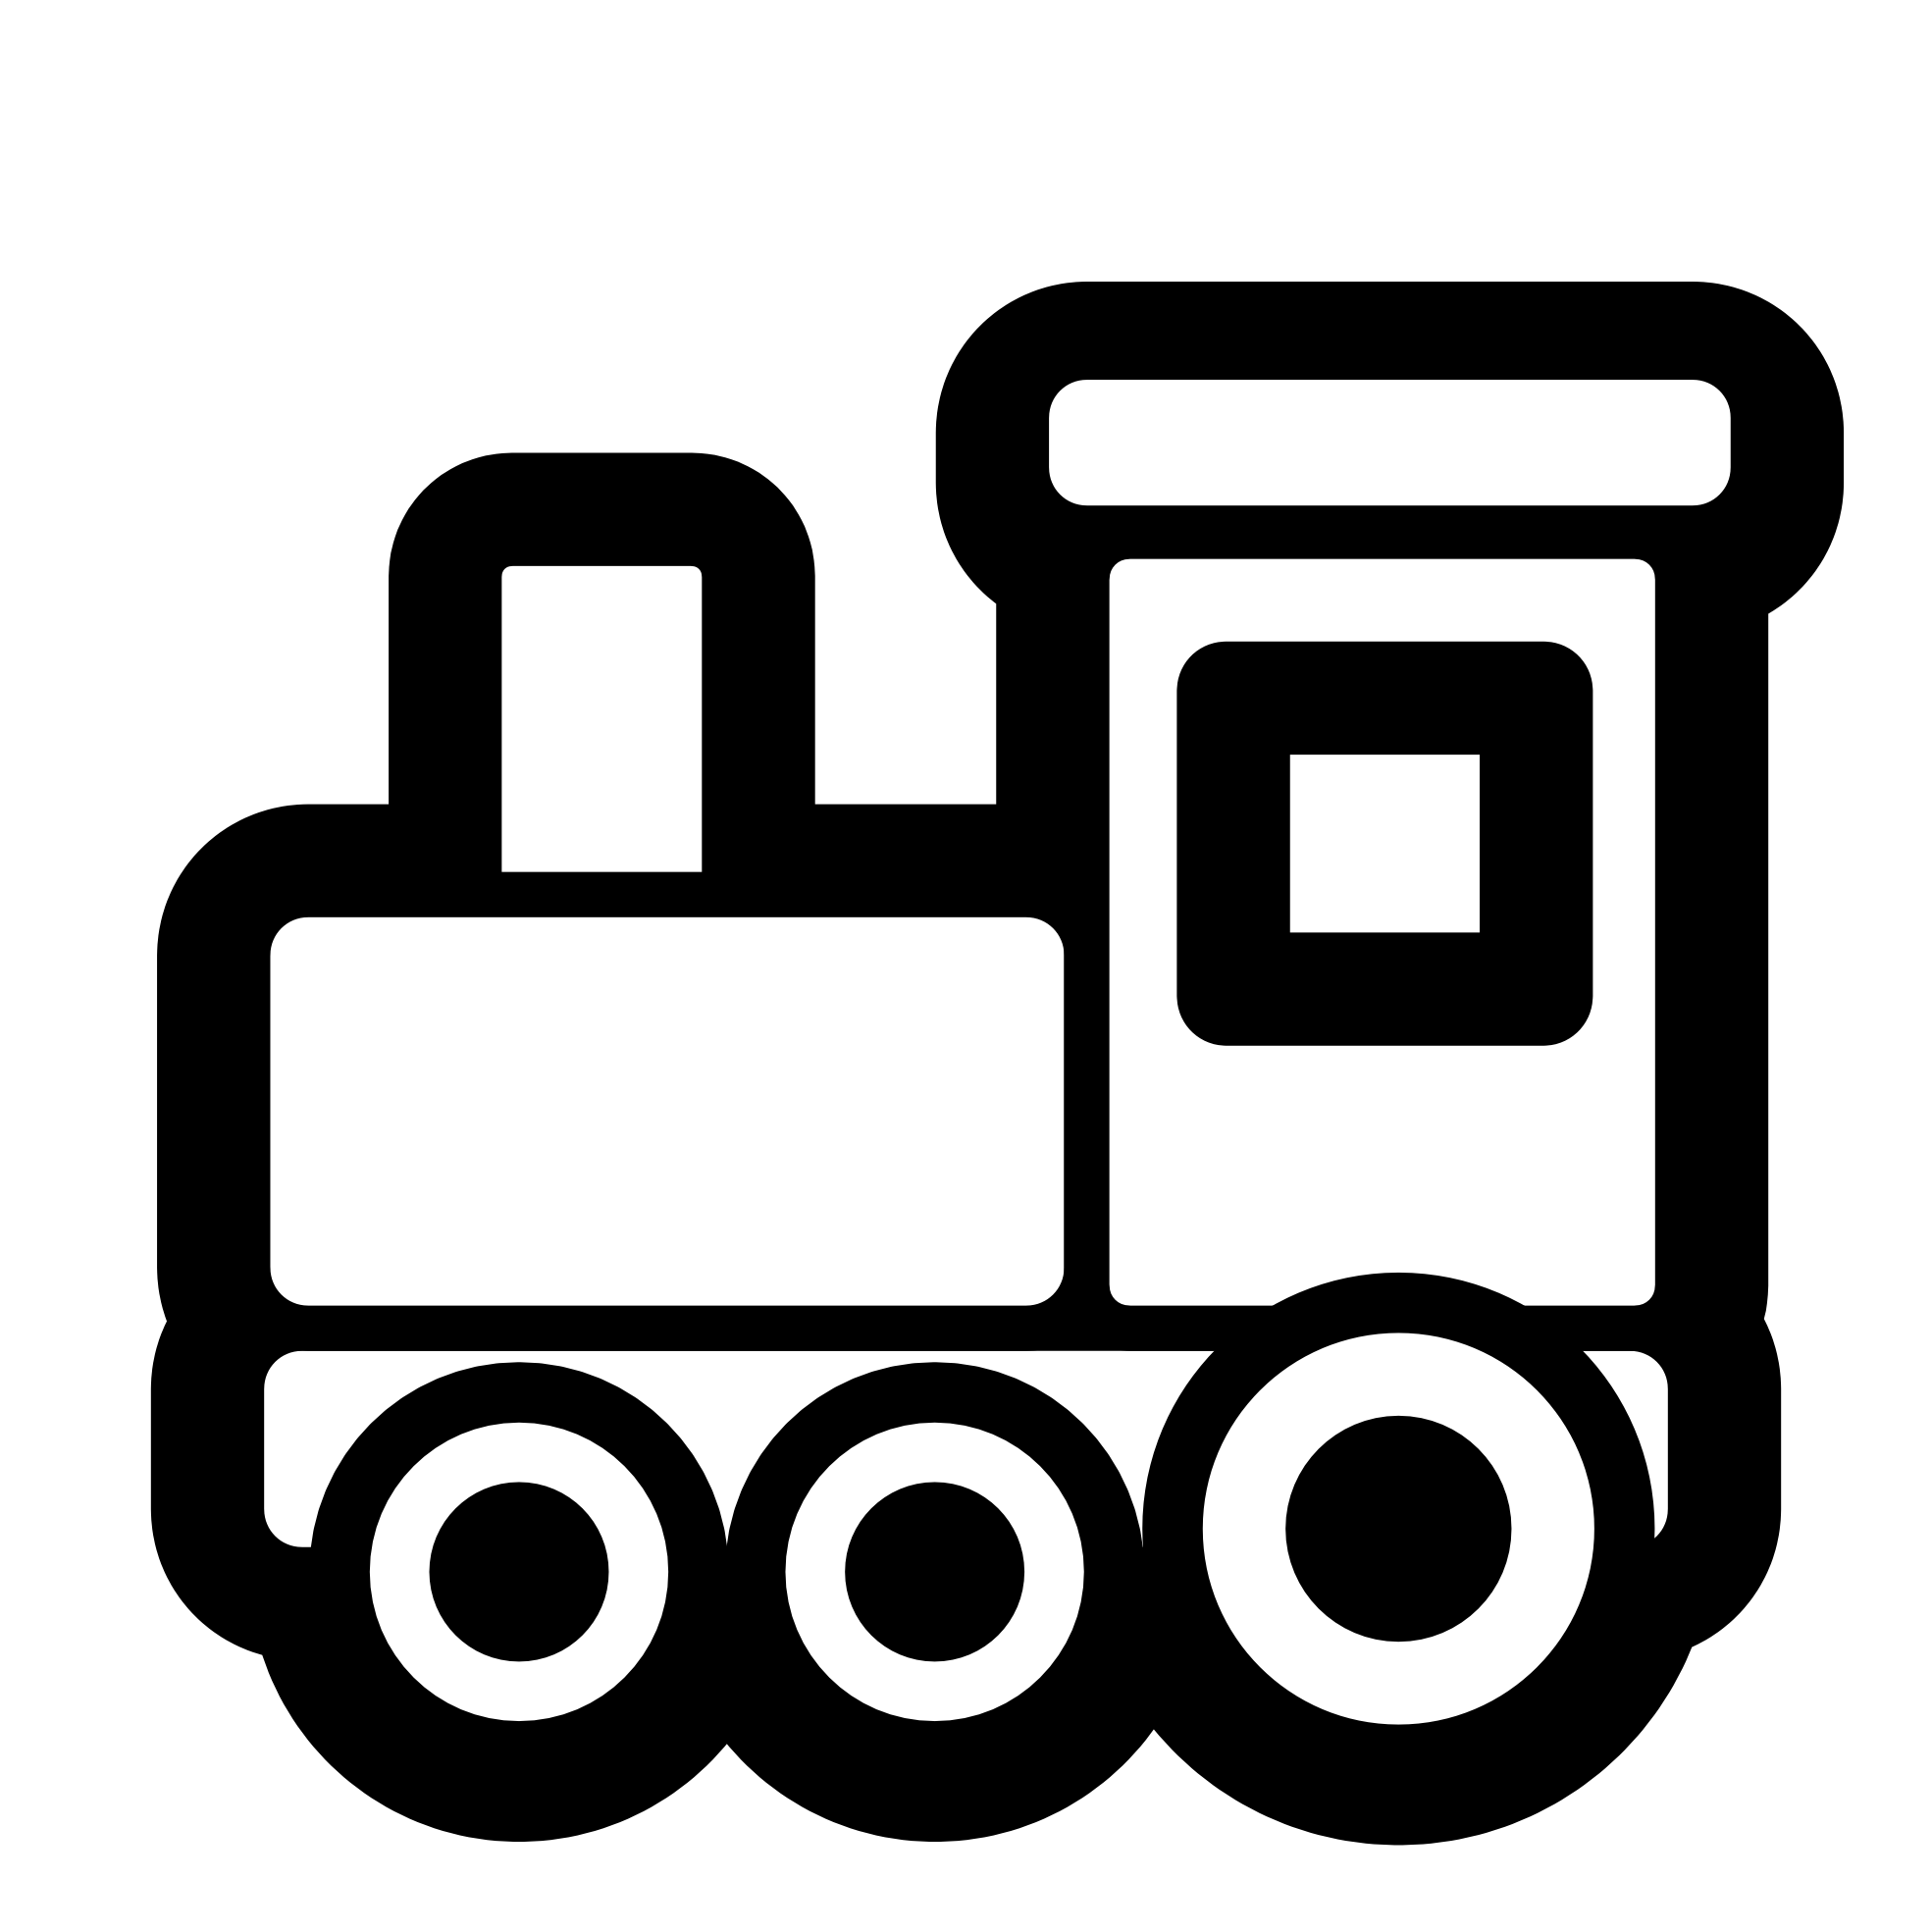 Toy Train Icon Black White Line Art Scalable Vector Graphics Svg